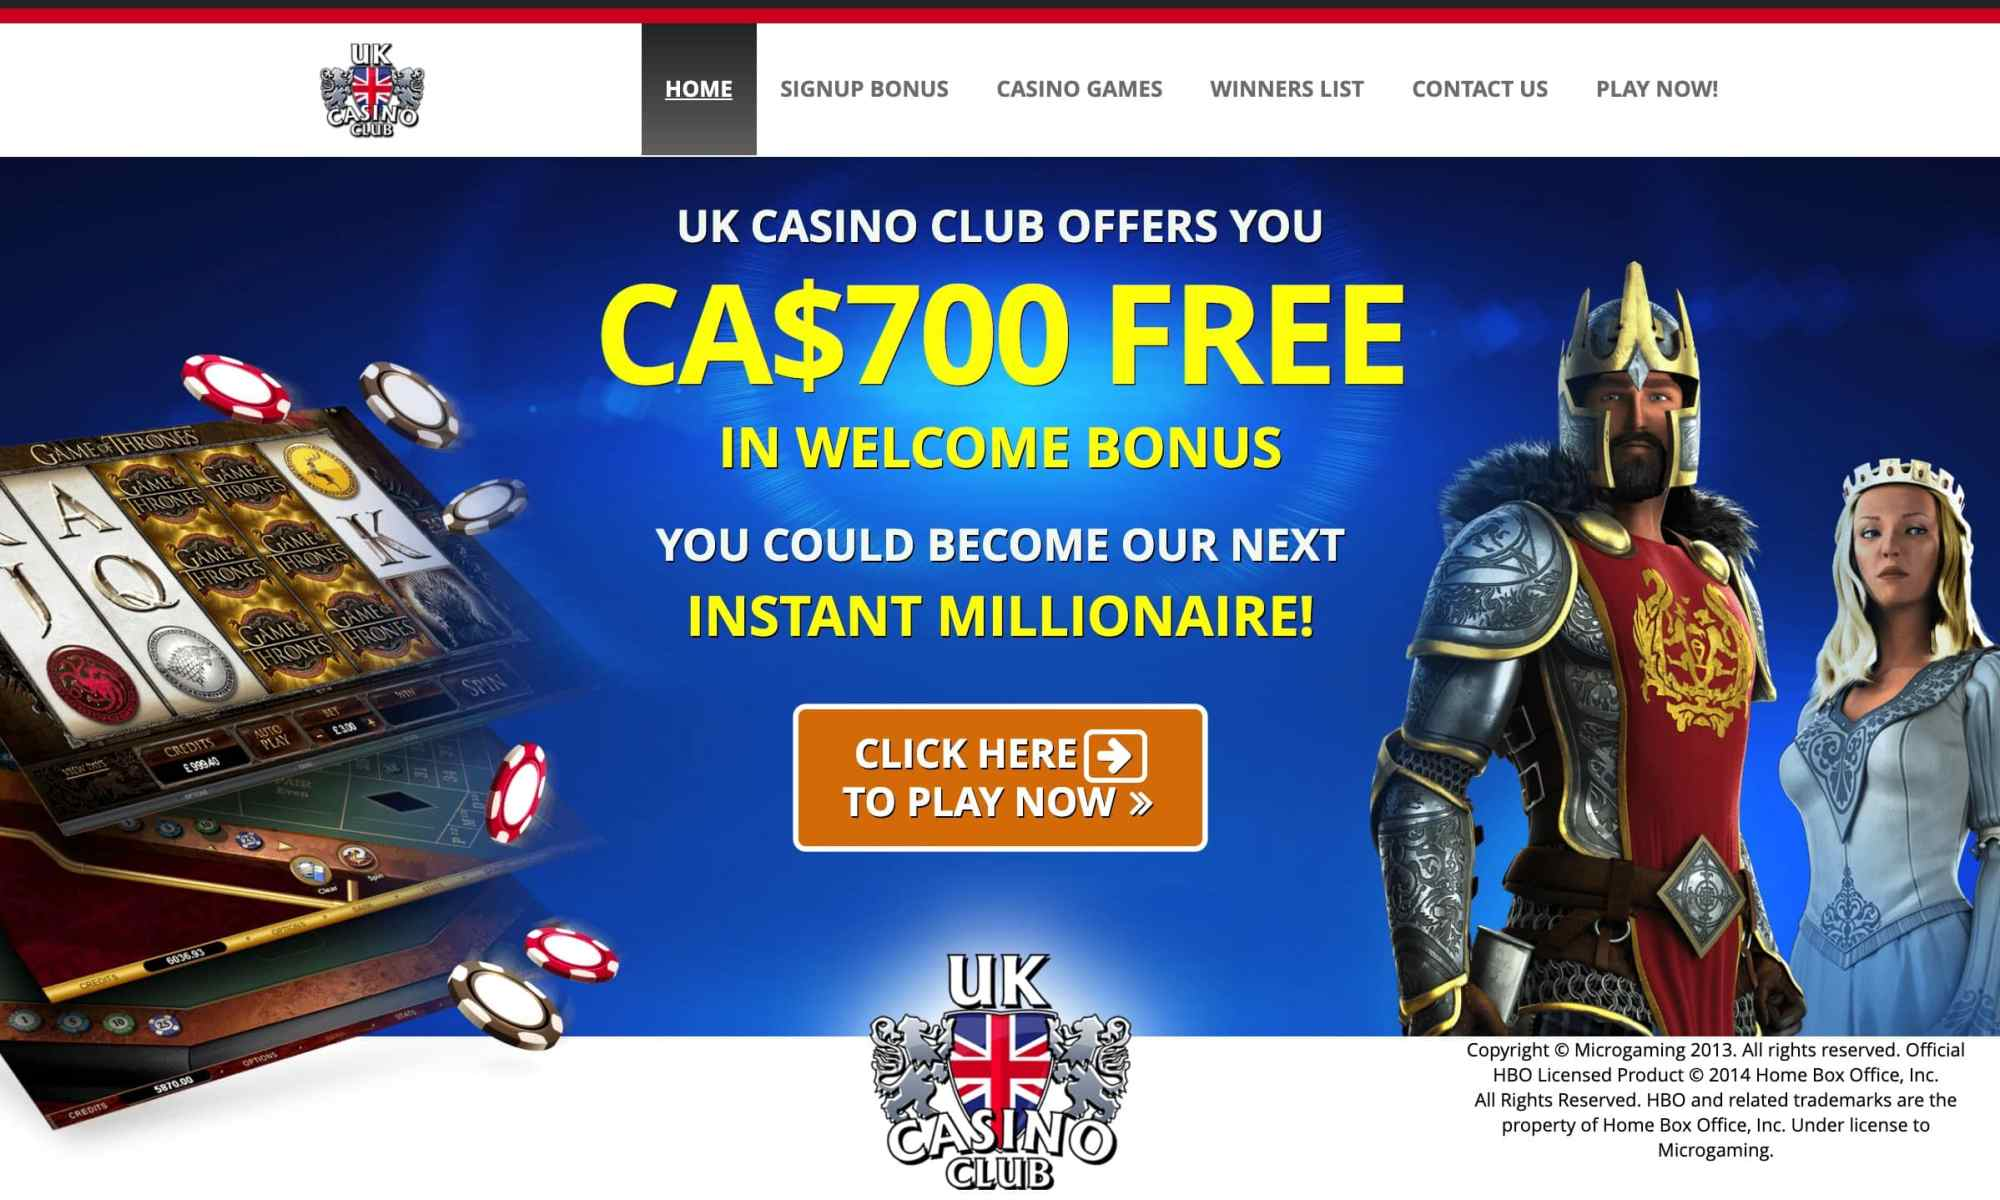 Uk Casino Club - £700 Vip Rewards In New Interactive Gaming